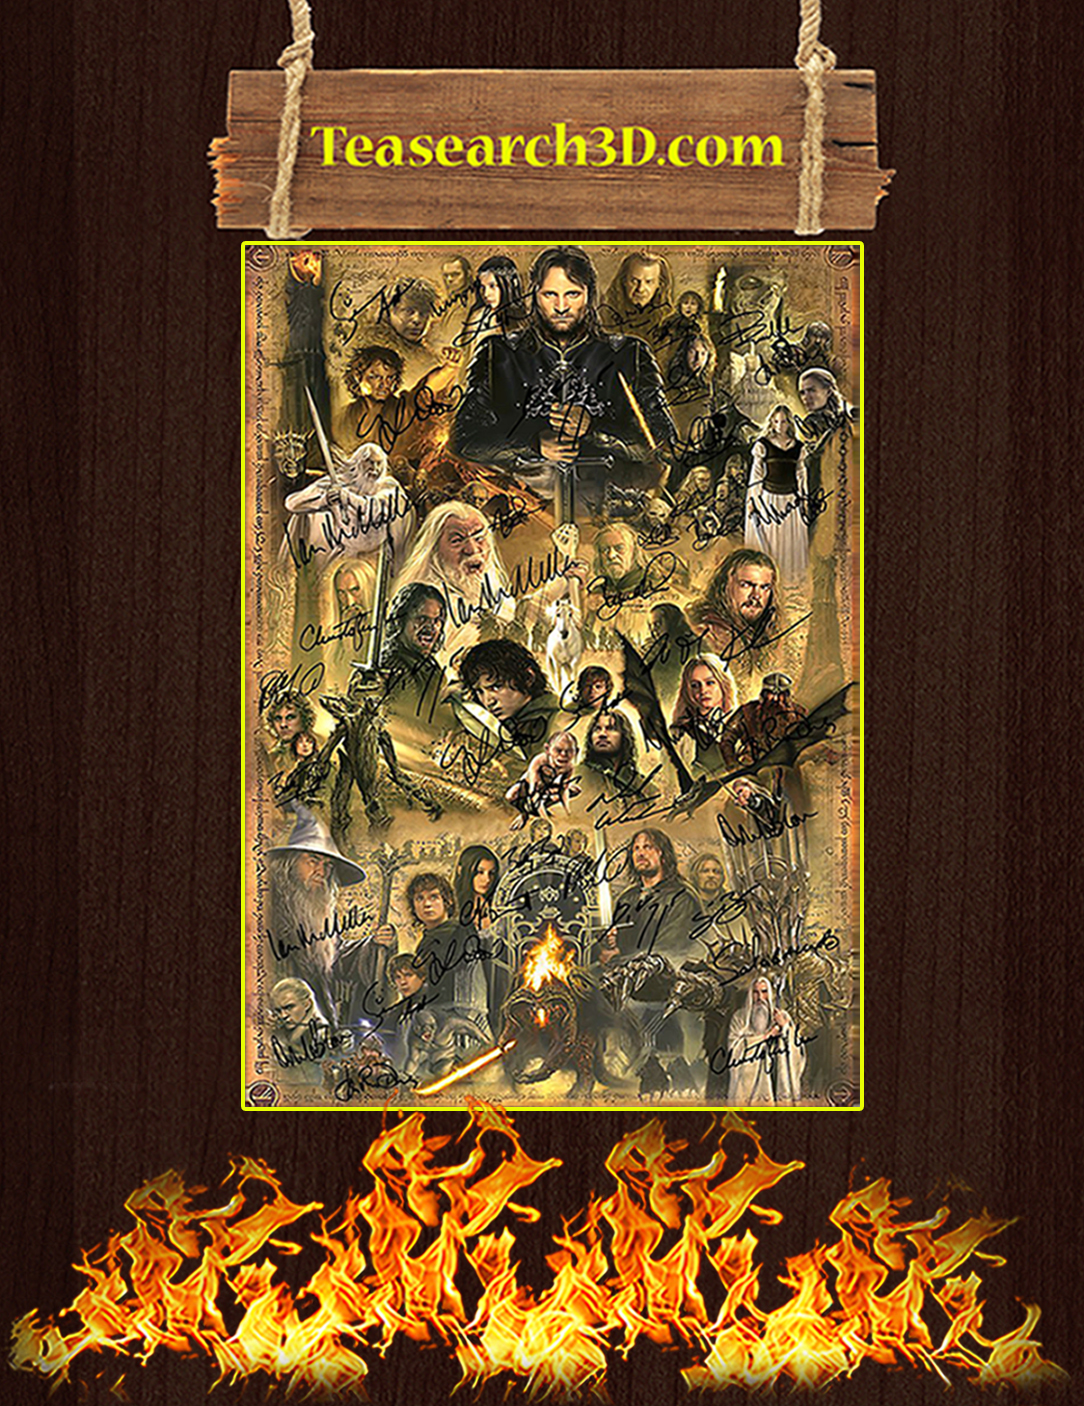 The lord of the rings signature poster A2